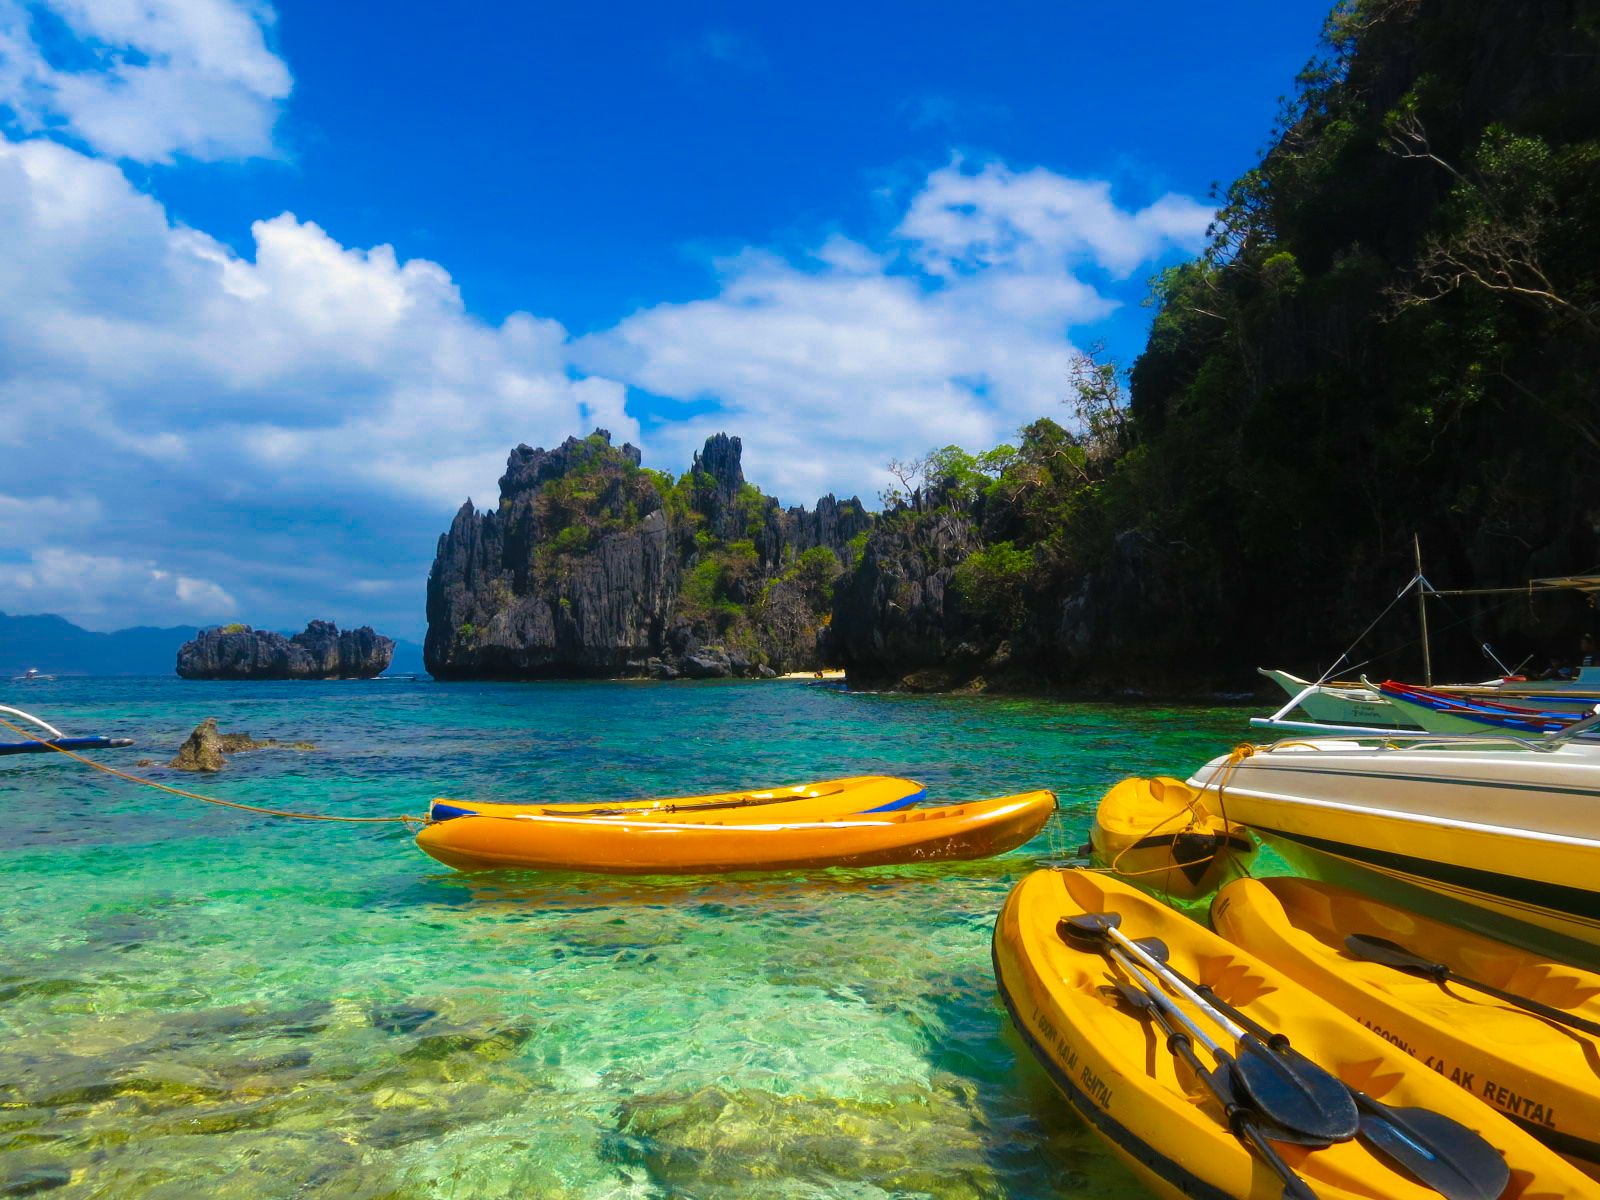 Pin on Travel Blogs - Philippines